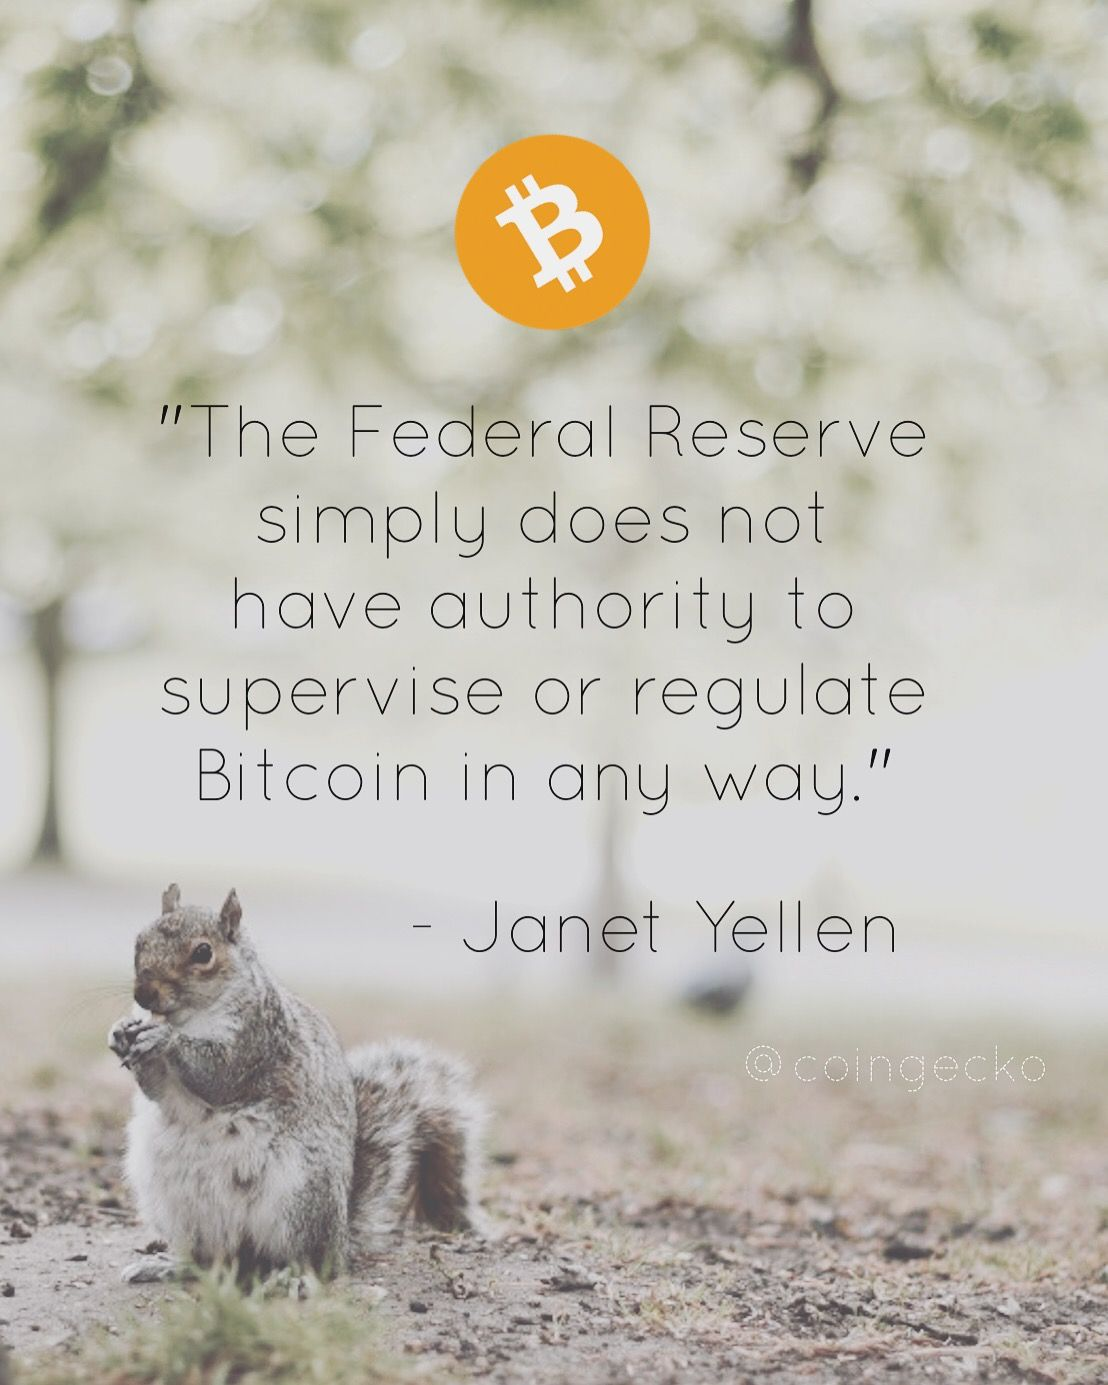 How To Make 65000 With Just 100 Investment With No Work Janet Yellen Bitcoin Coin Market